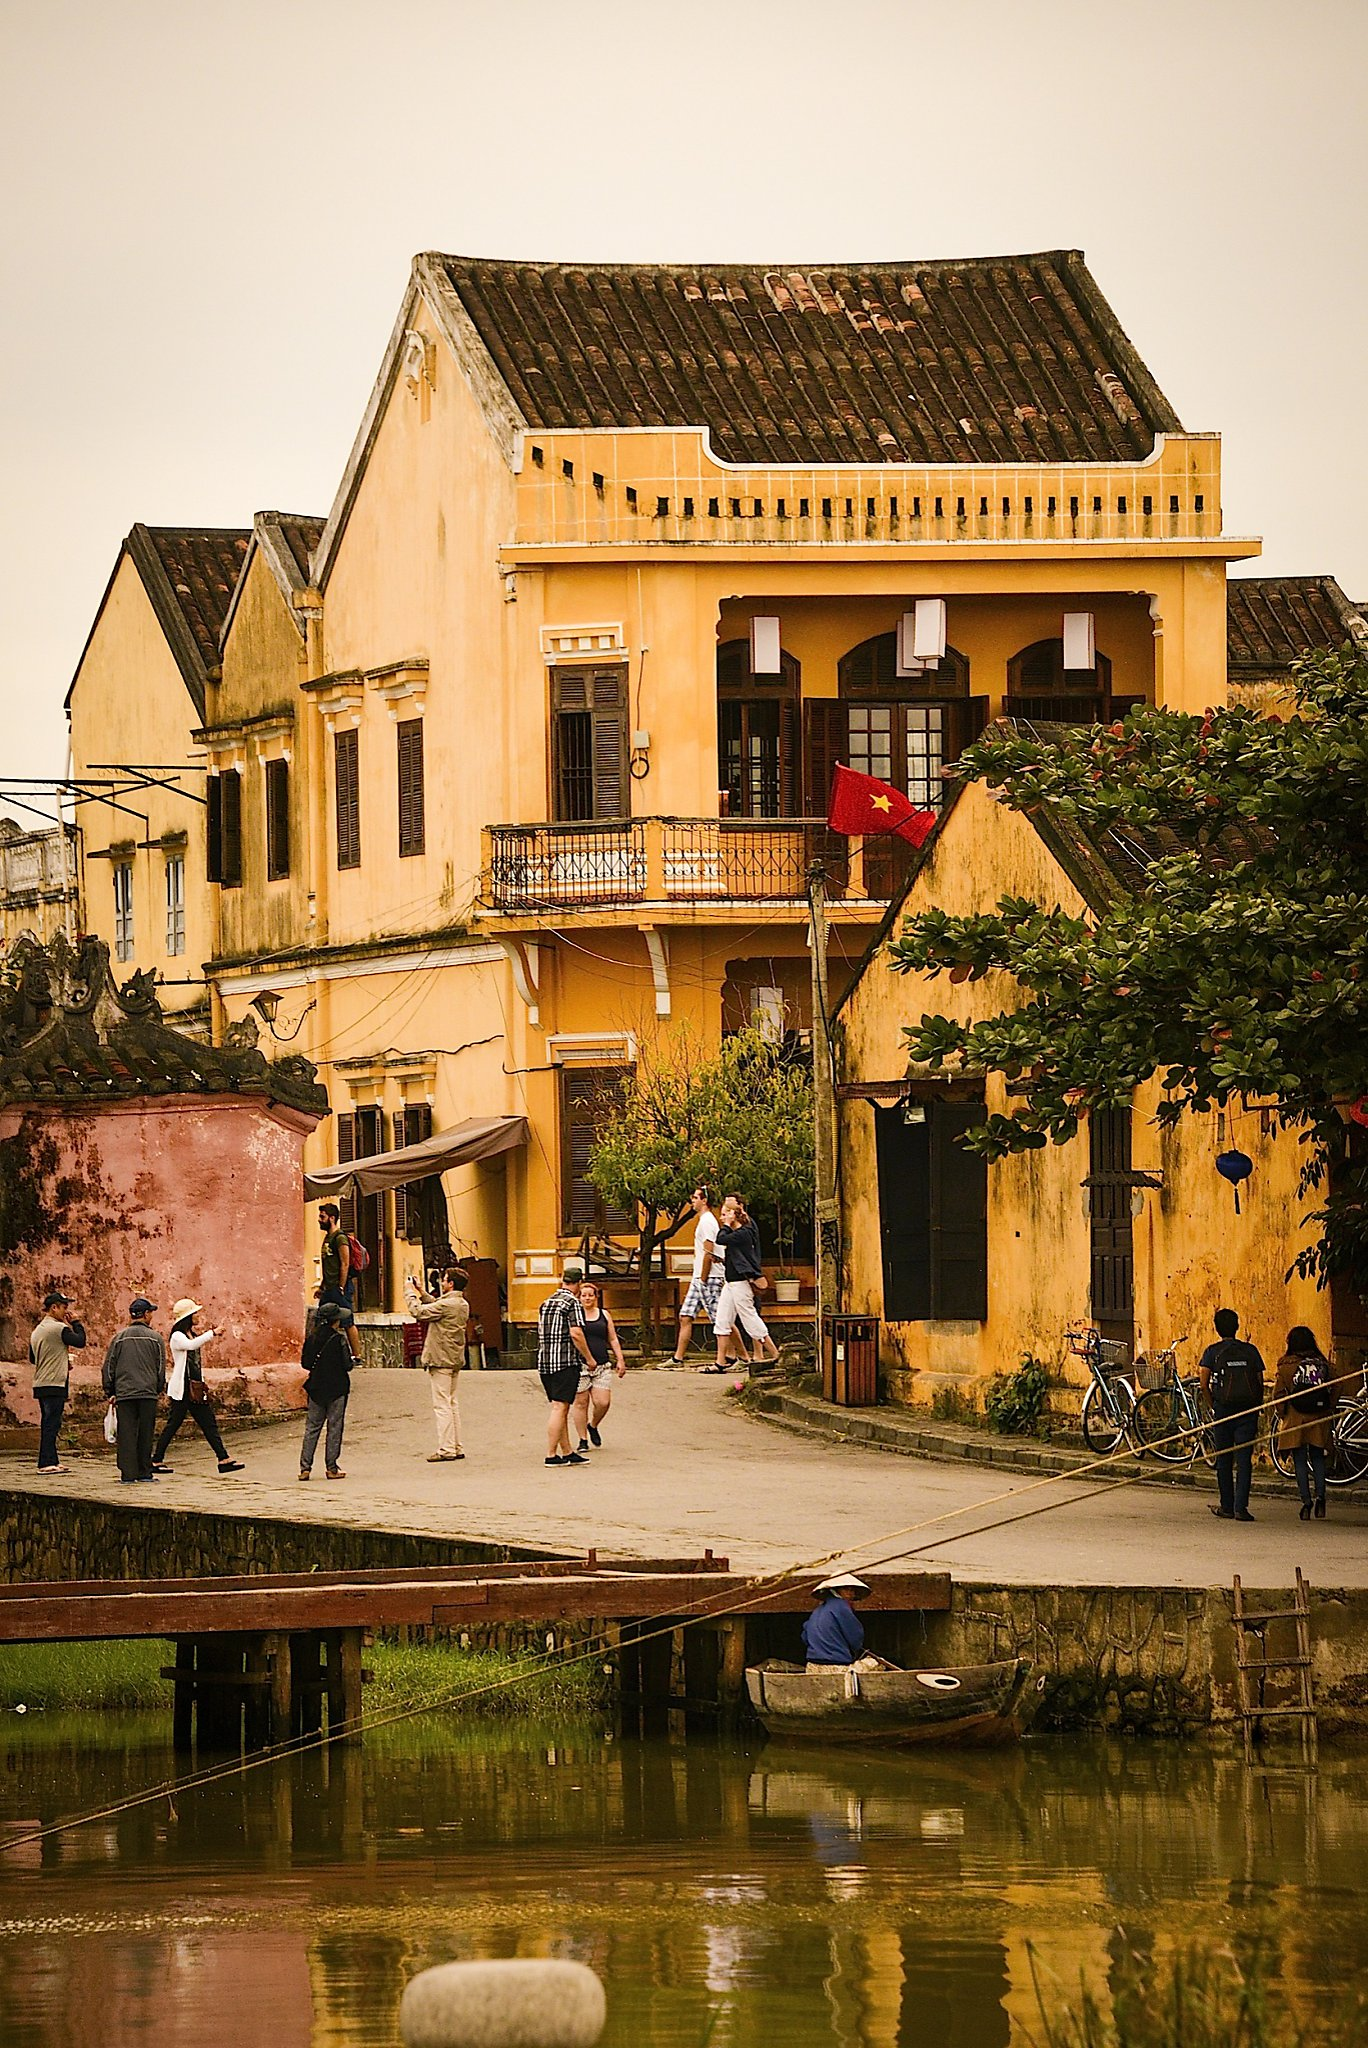 In bustling Vietnam, Hoi An a bridge to the past - SFGate